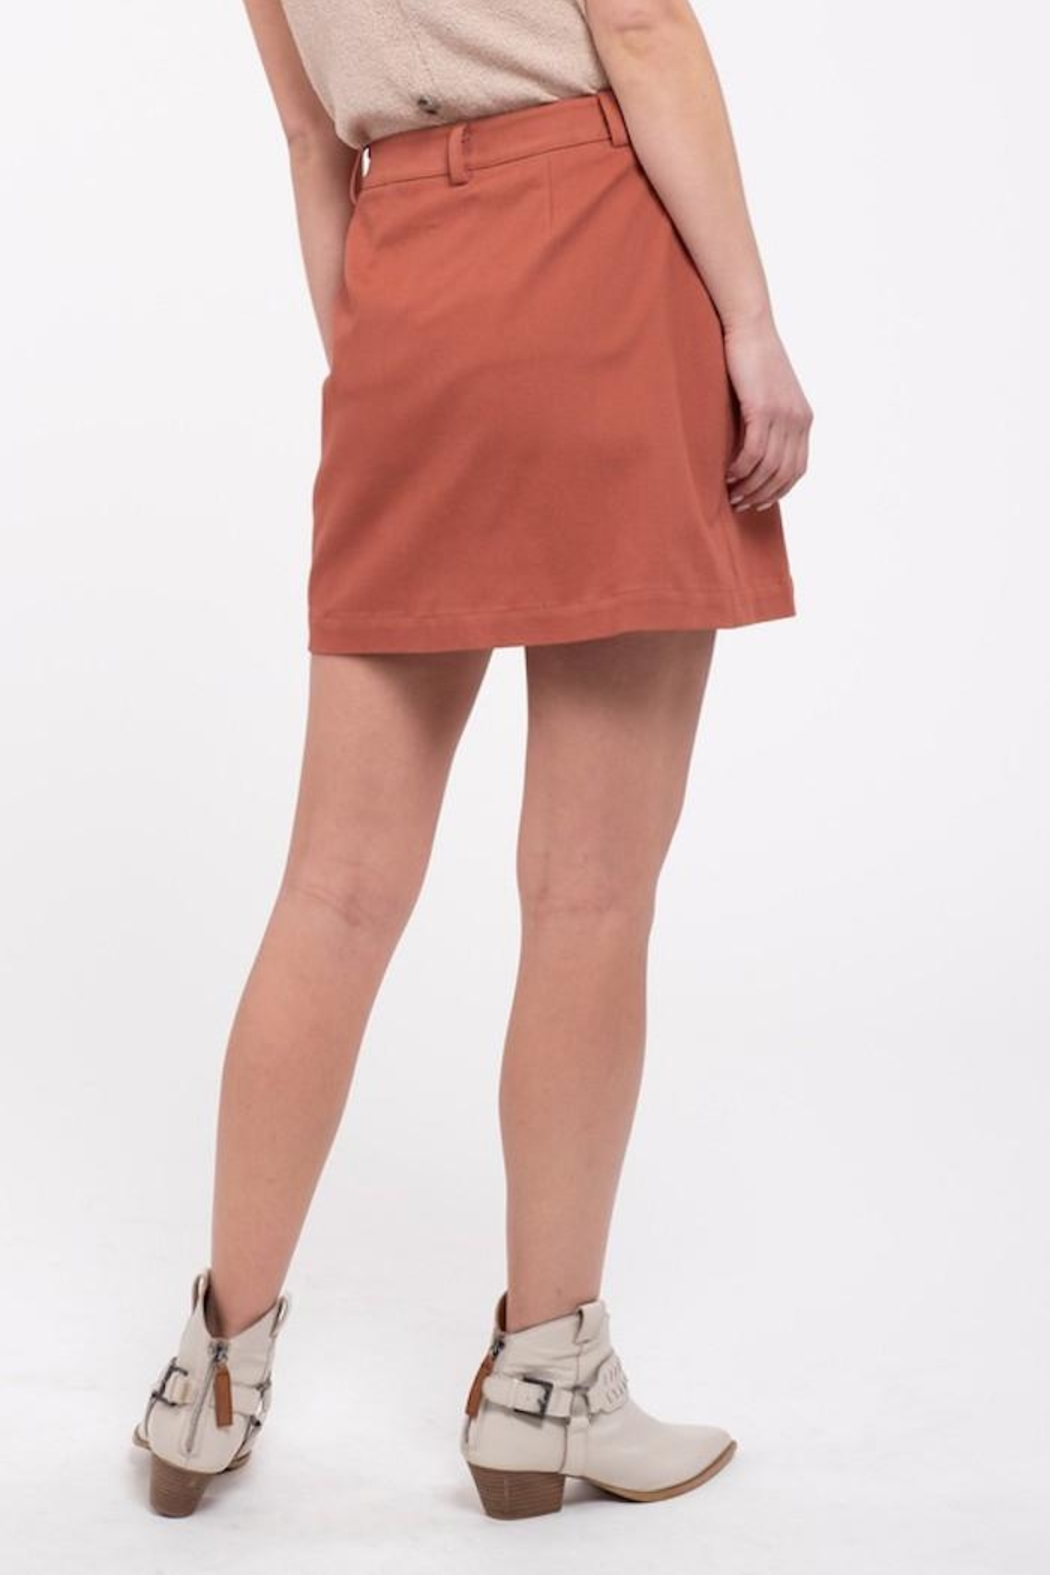 Blu Pepper Button Front Skirt - Side Cropped Image